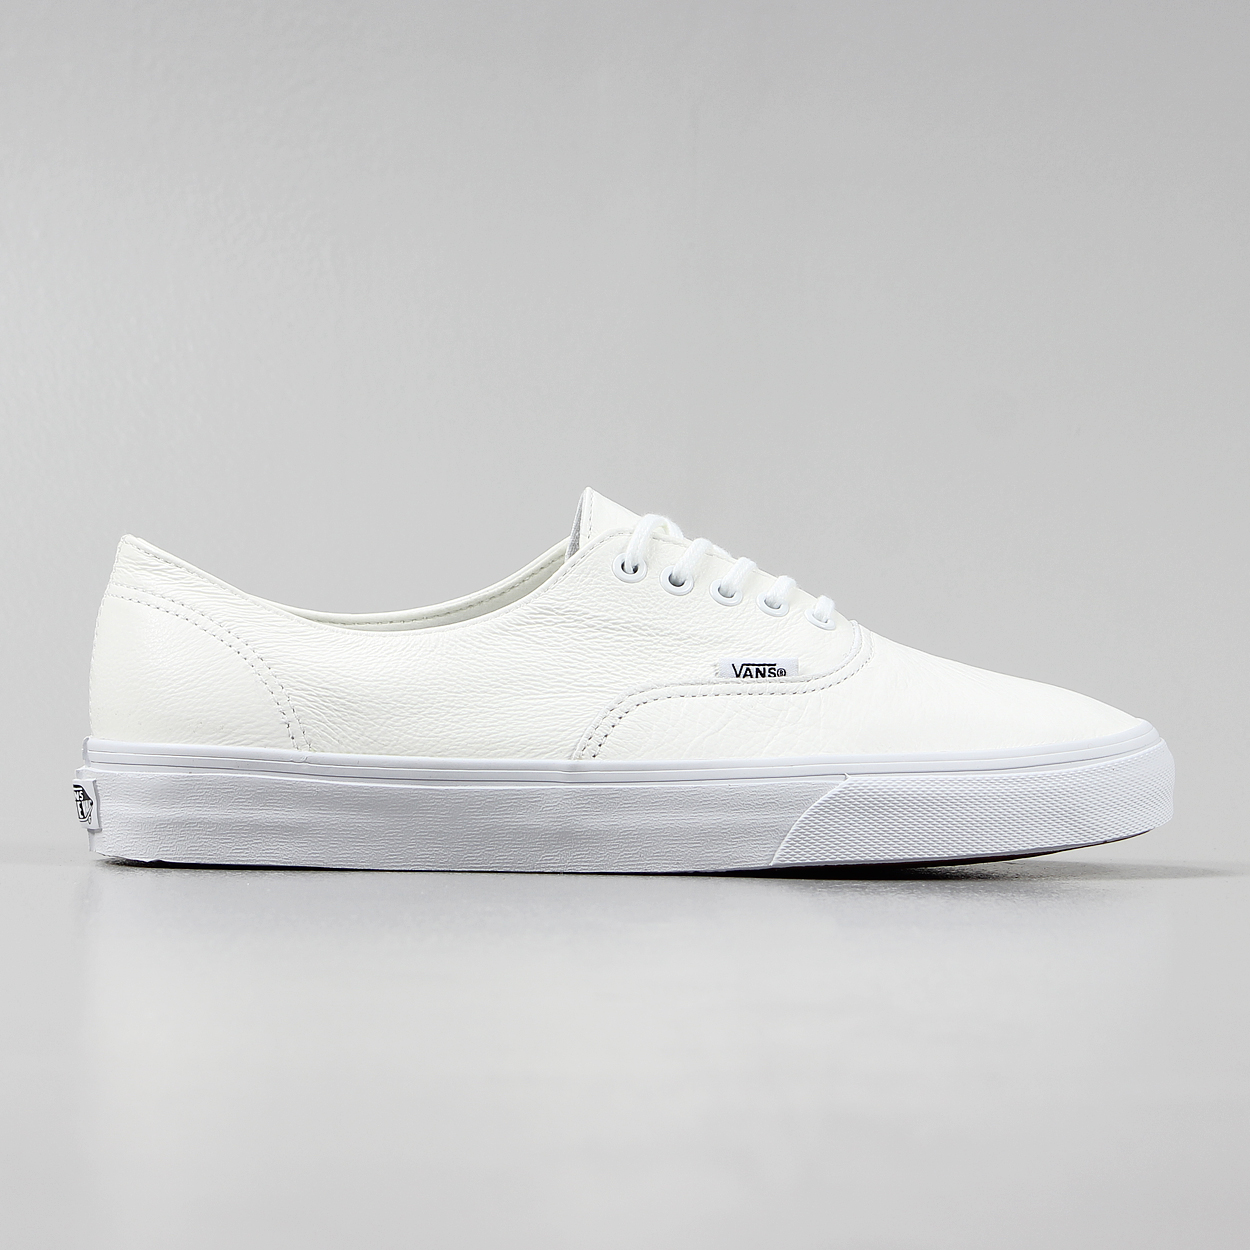 6994d4130e0 Vans Mens Premium Leather Authentic Decon Shoes White Trainers £41.25